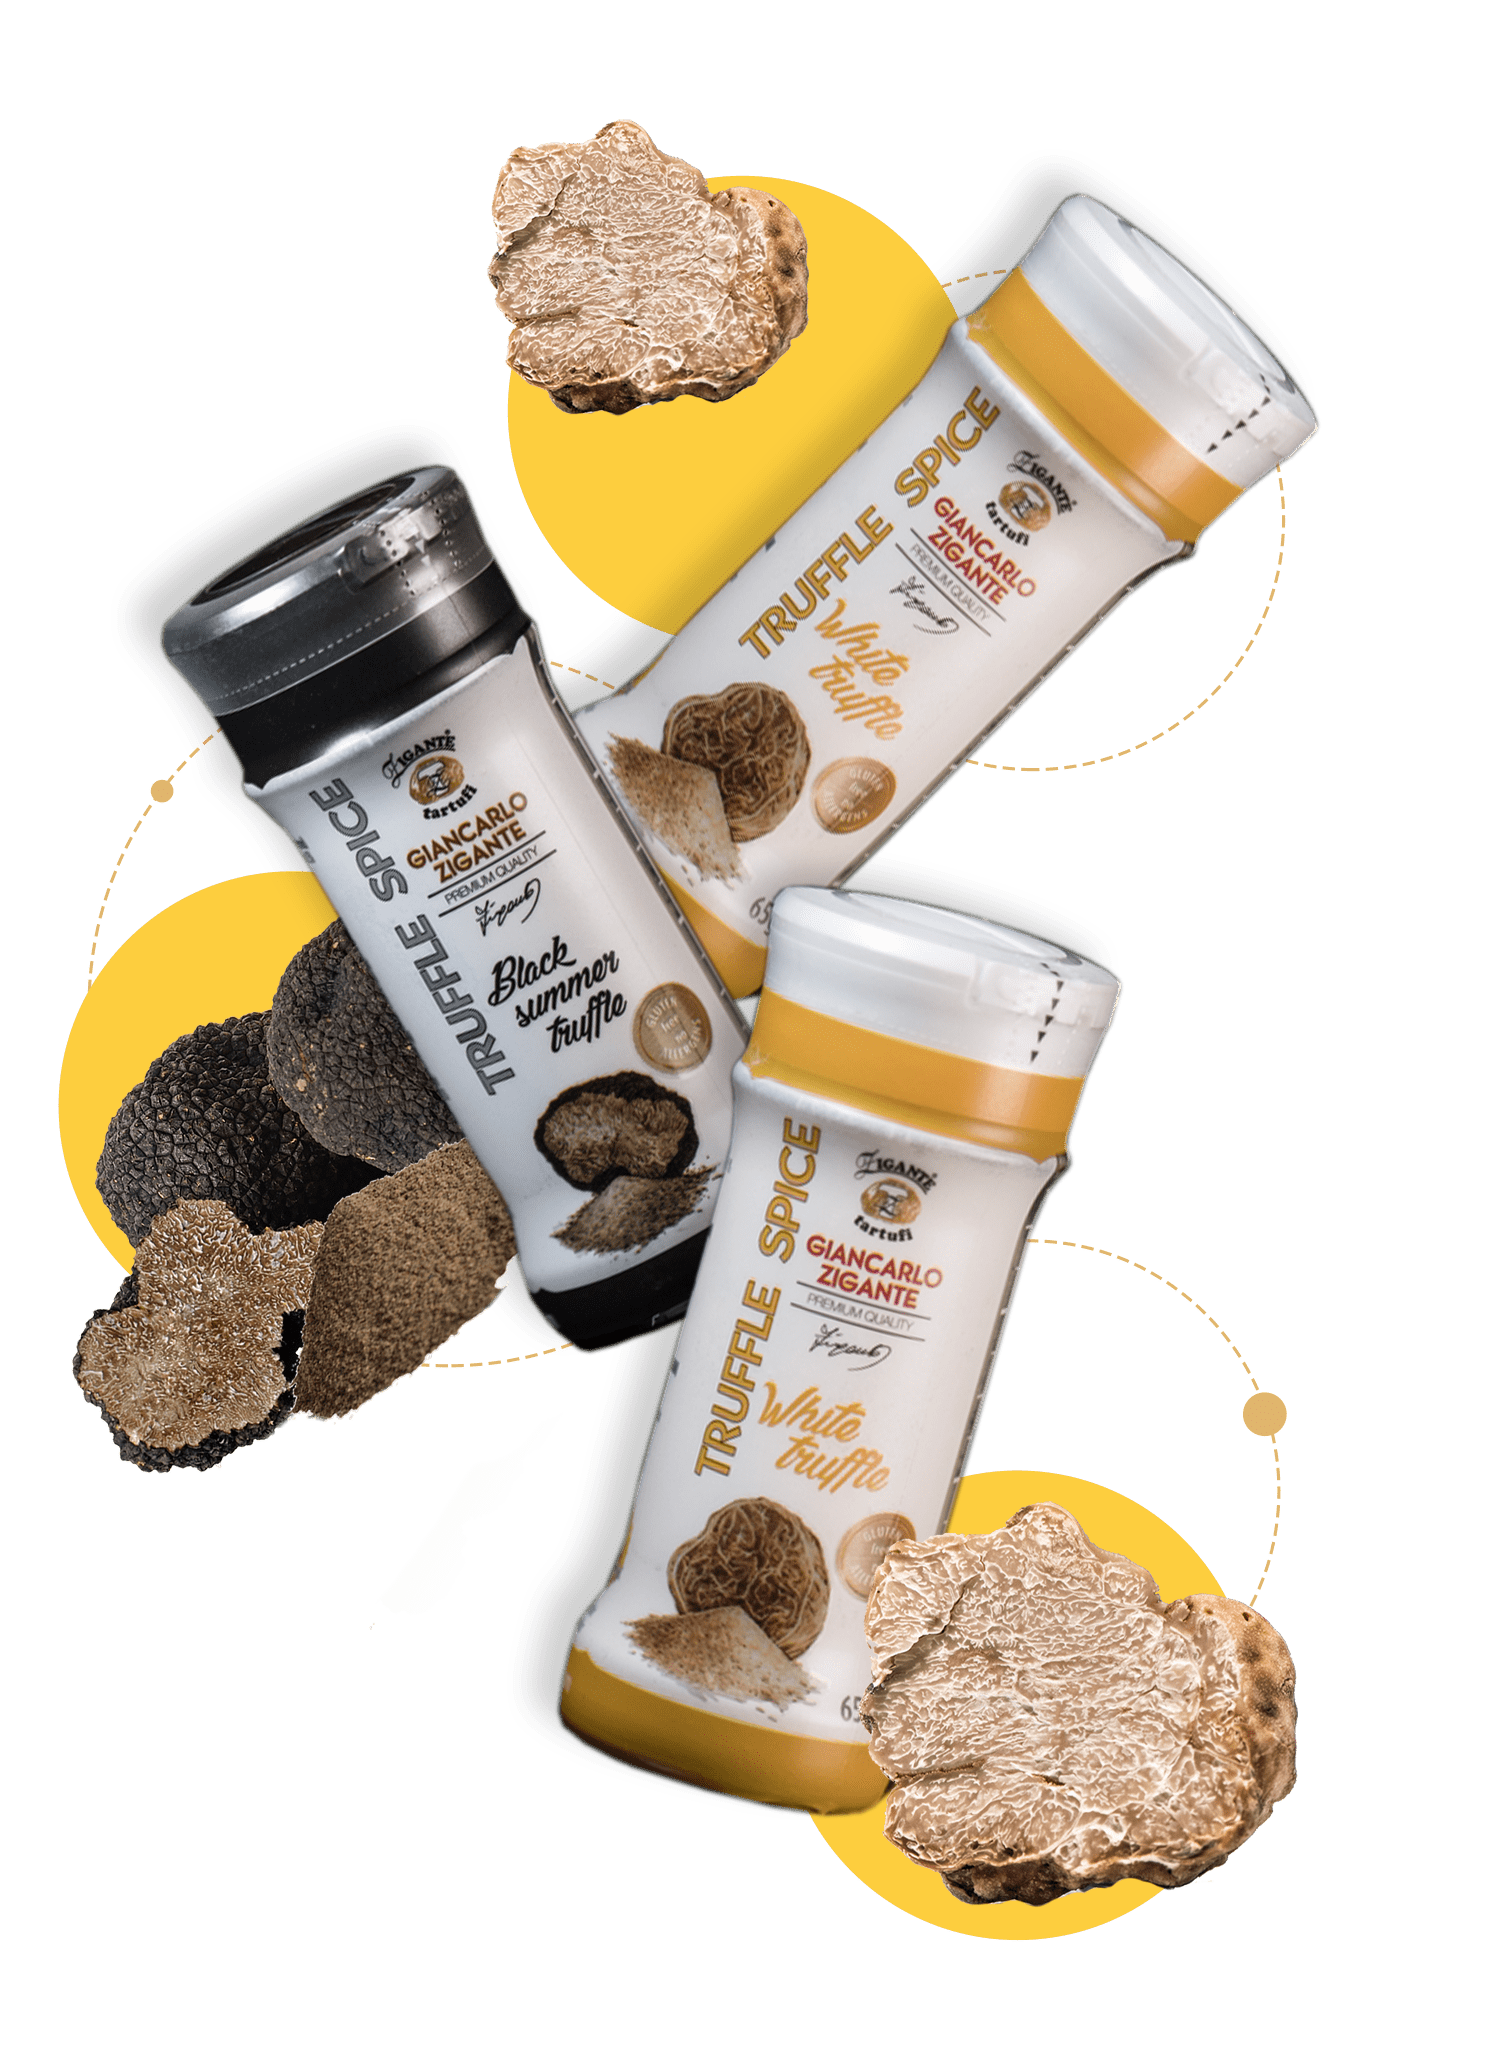 Powdered spices with lyophilized truffles